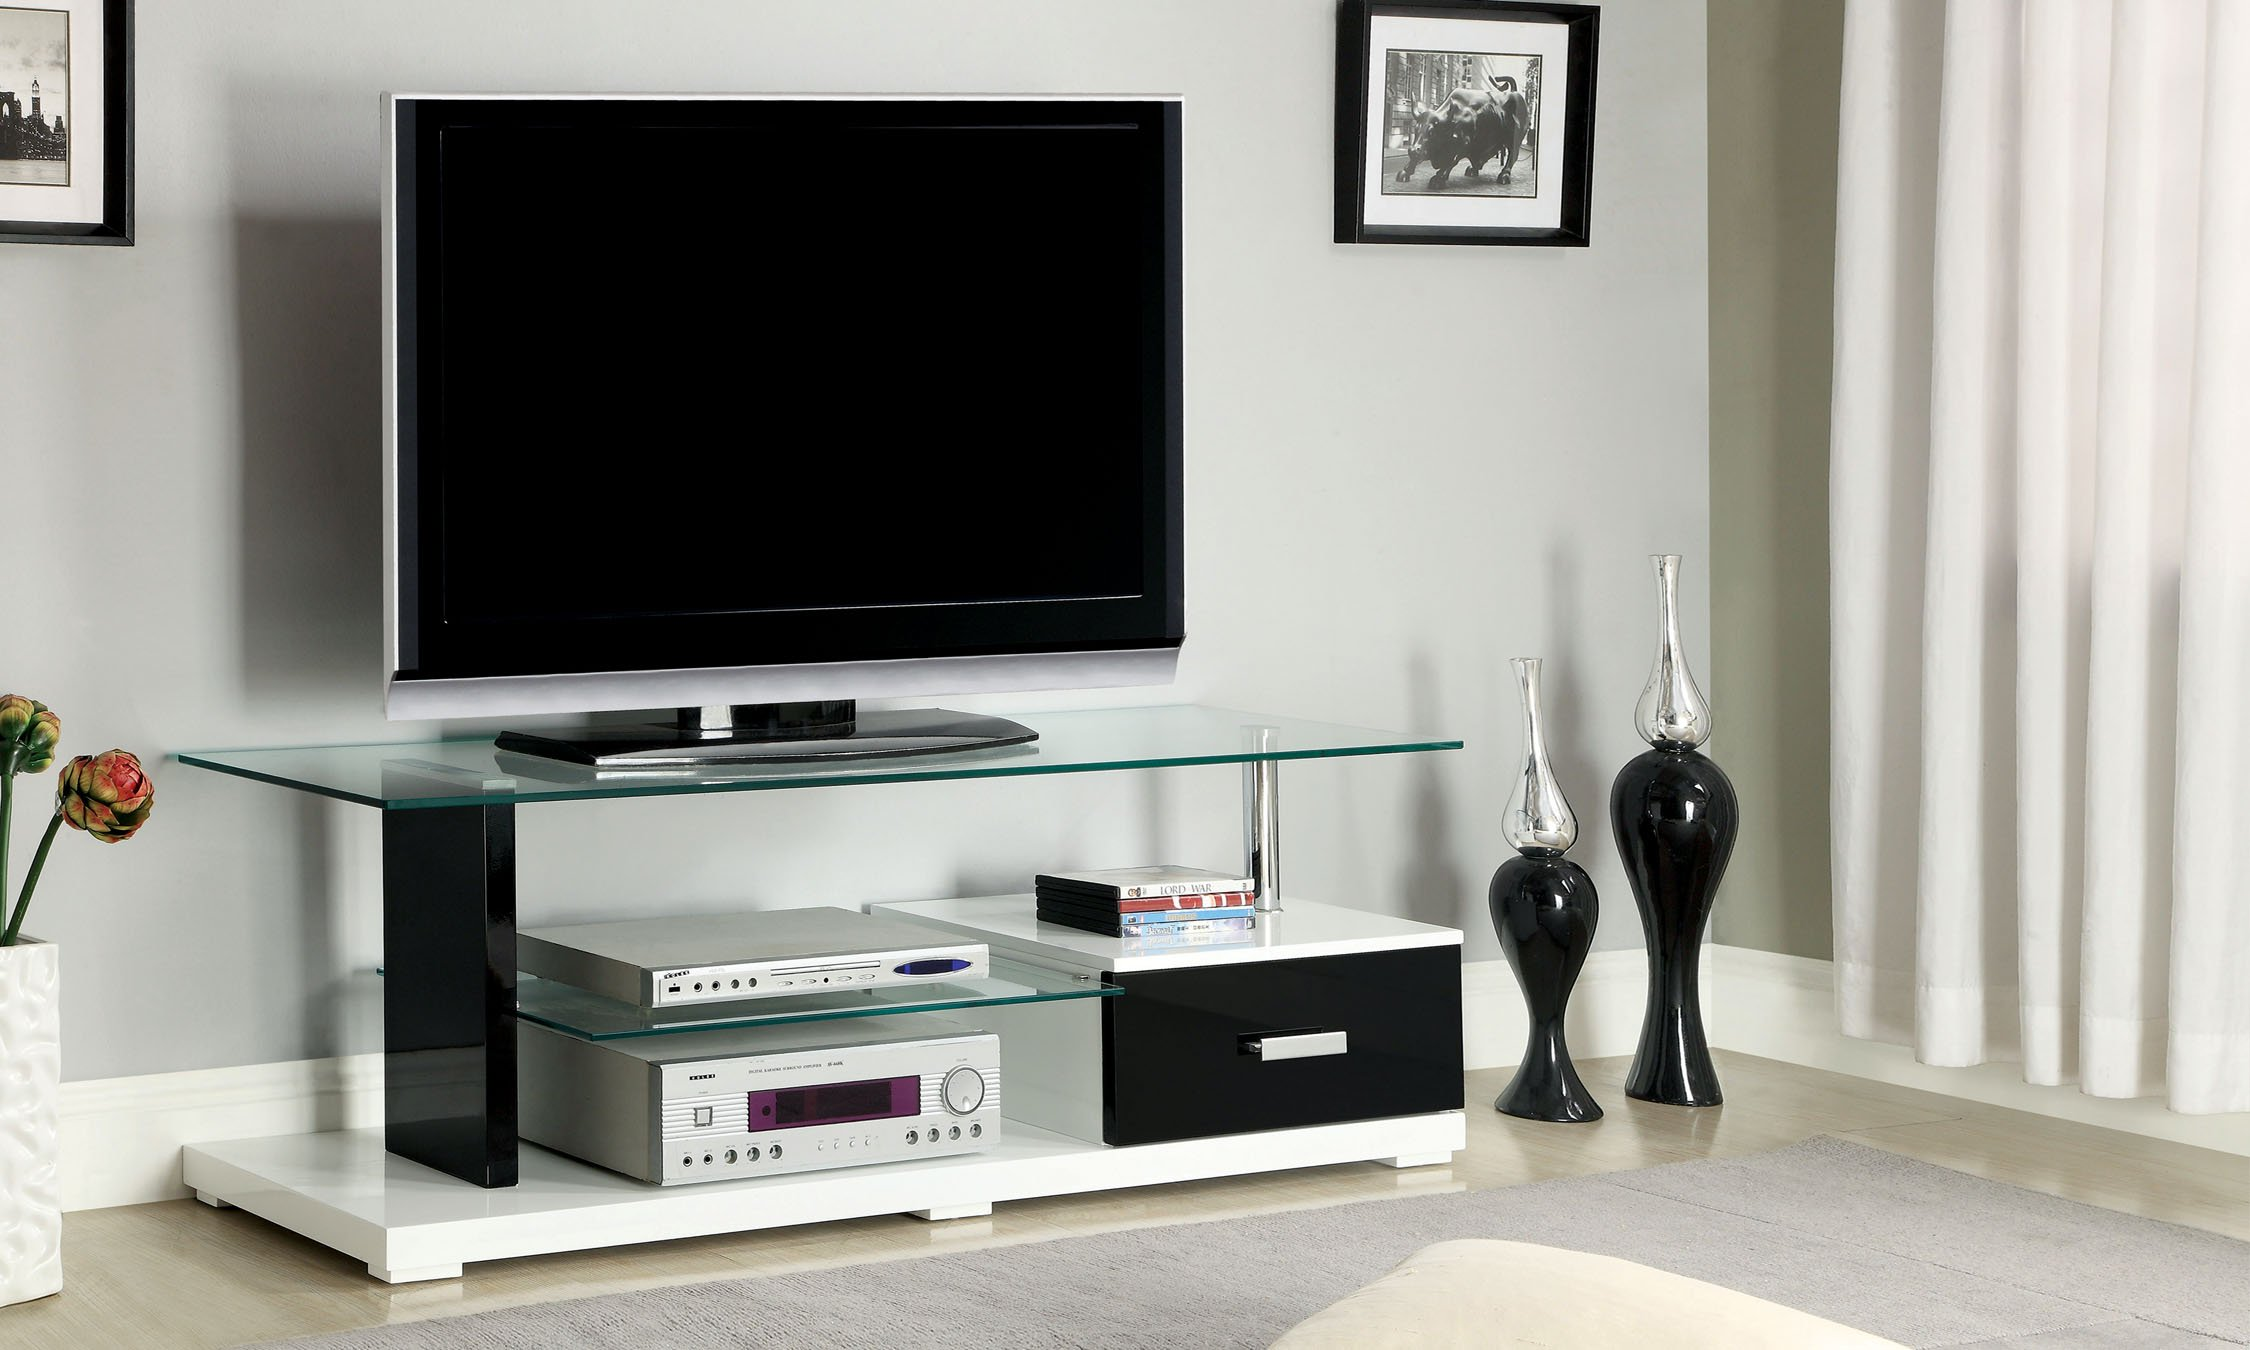 Furniture of America Rave Contemporary TV Console with Storage Drawer, 55-Inch, Glossy Black and White